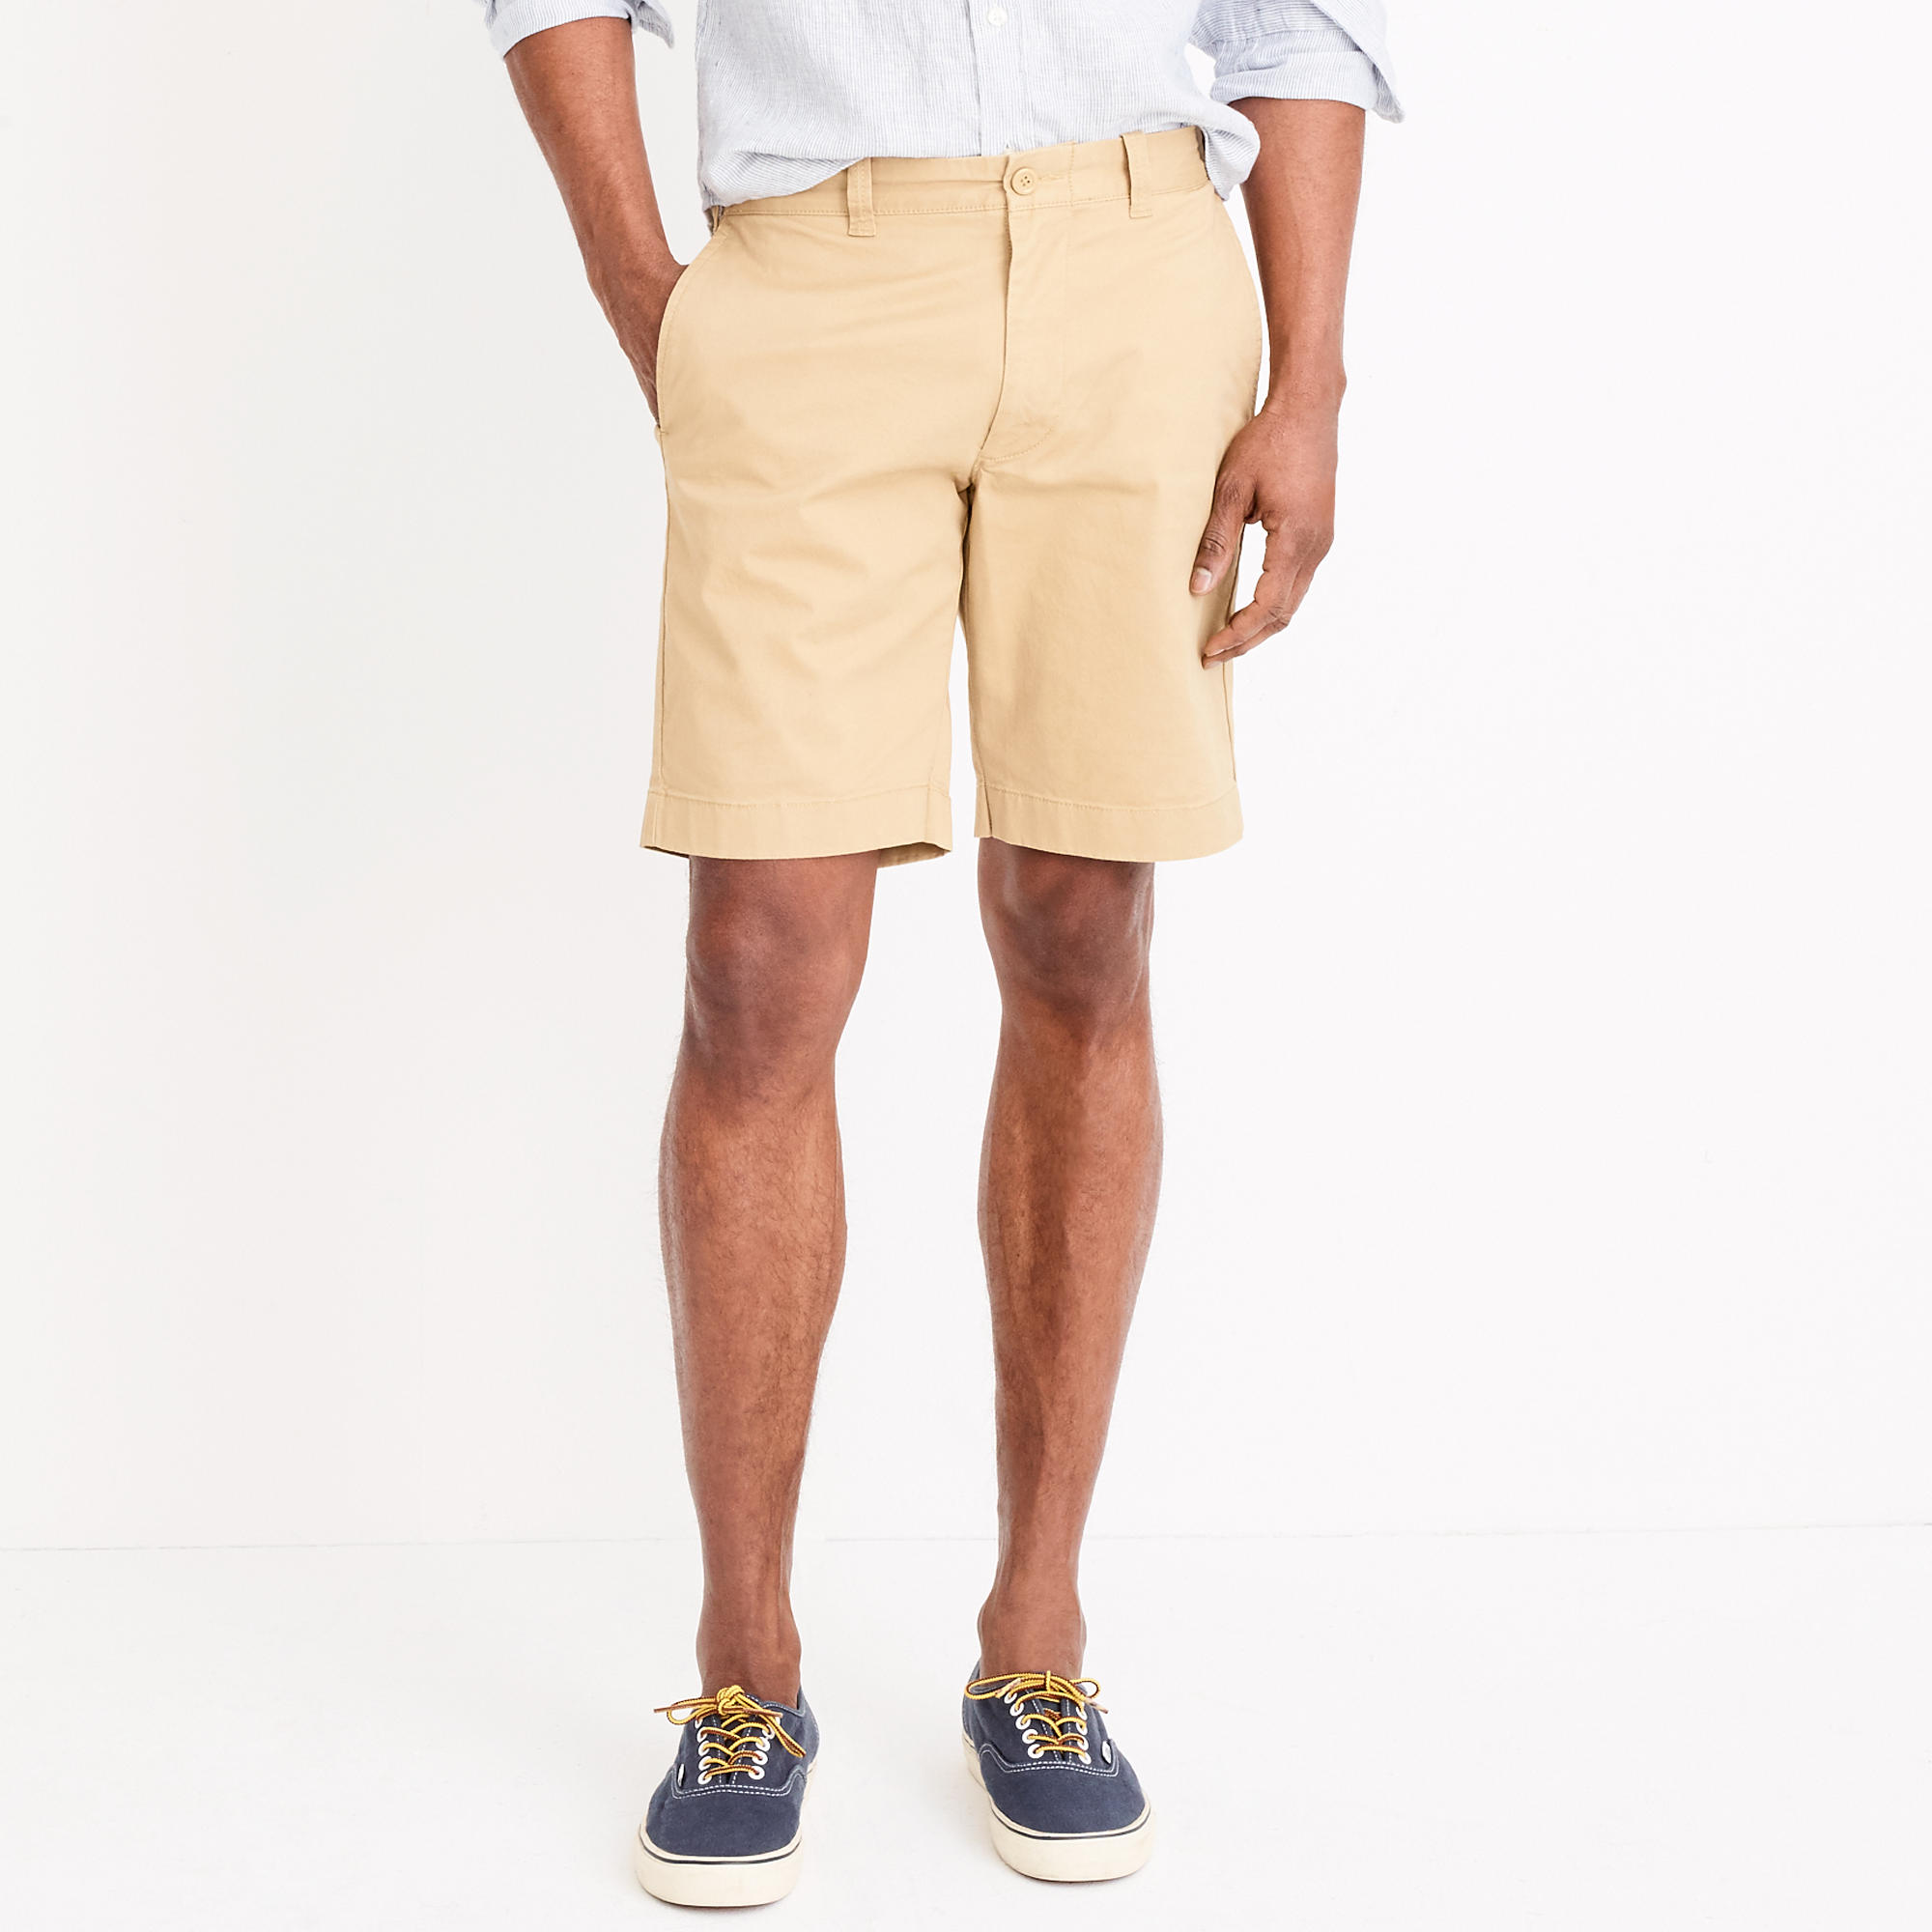 Men's Shorts : Men's Shorts & Swim | J.Crew Factory